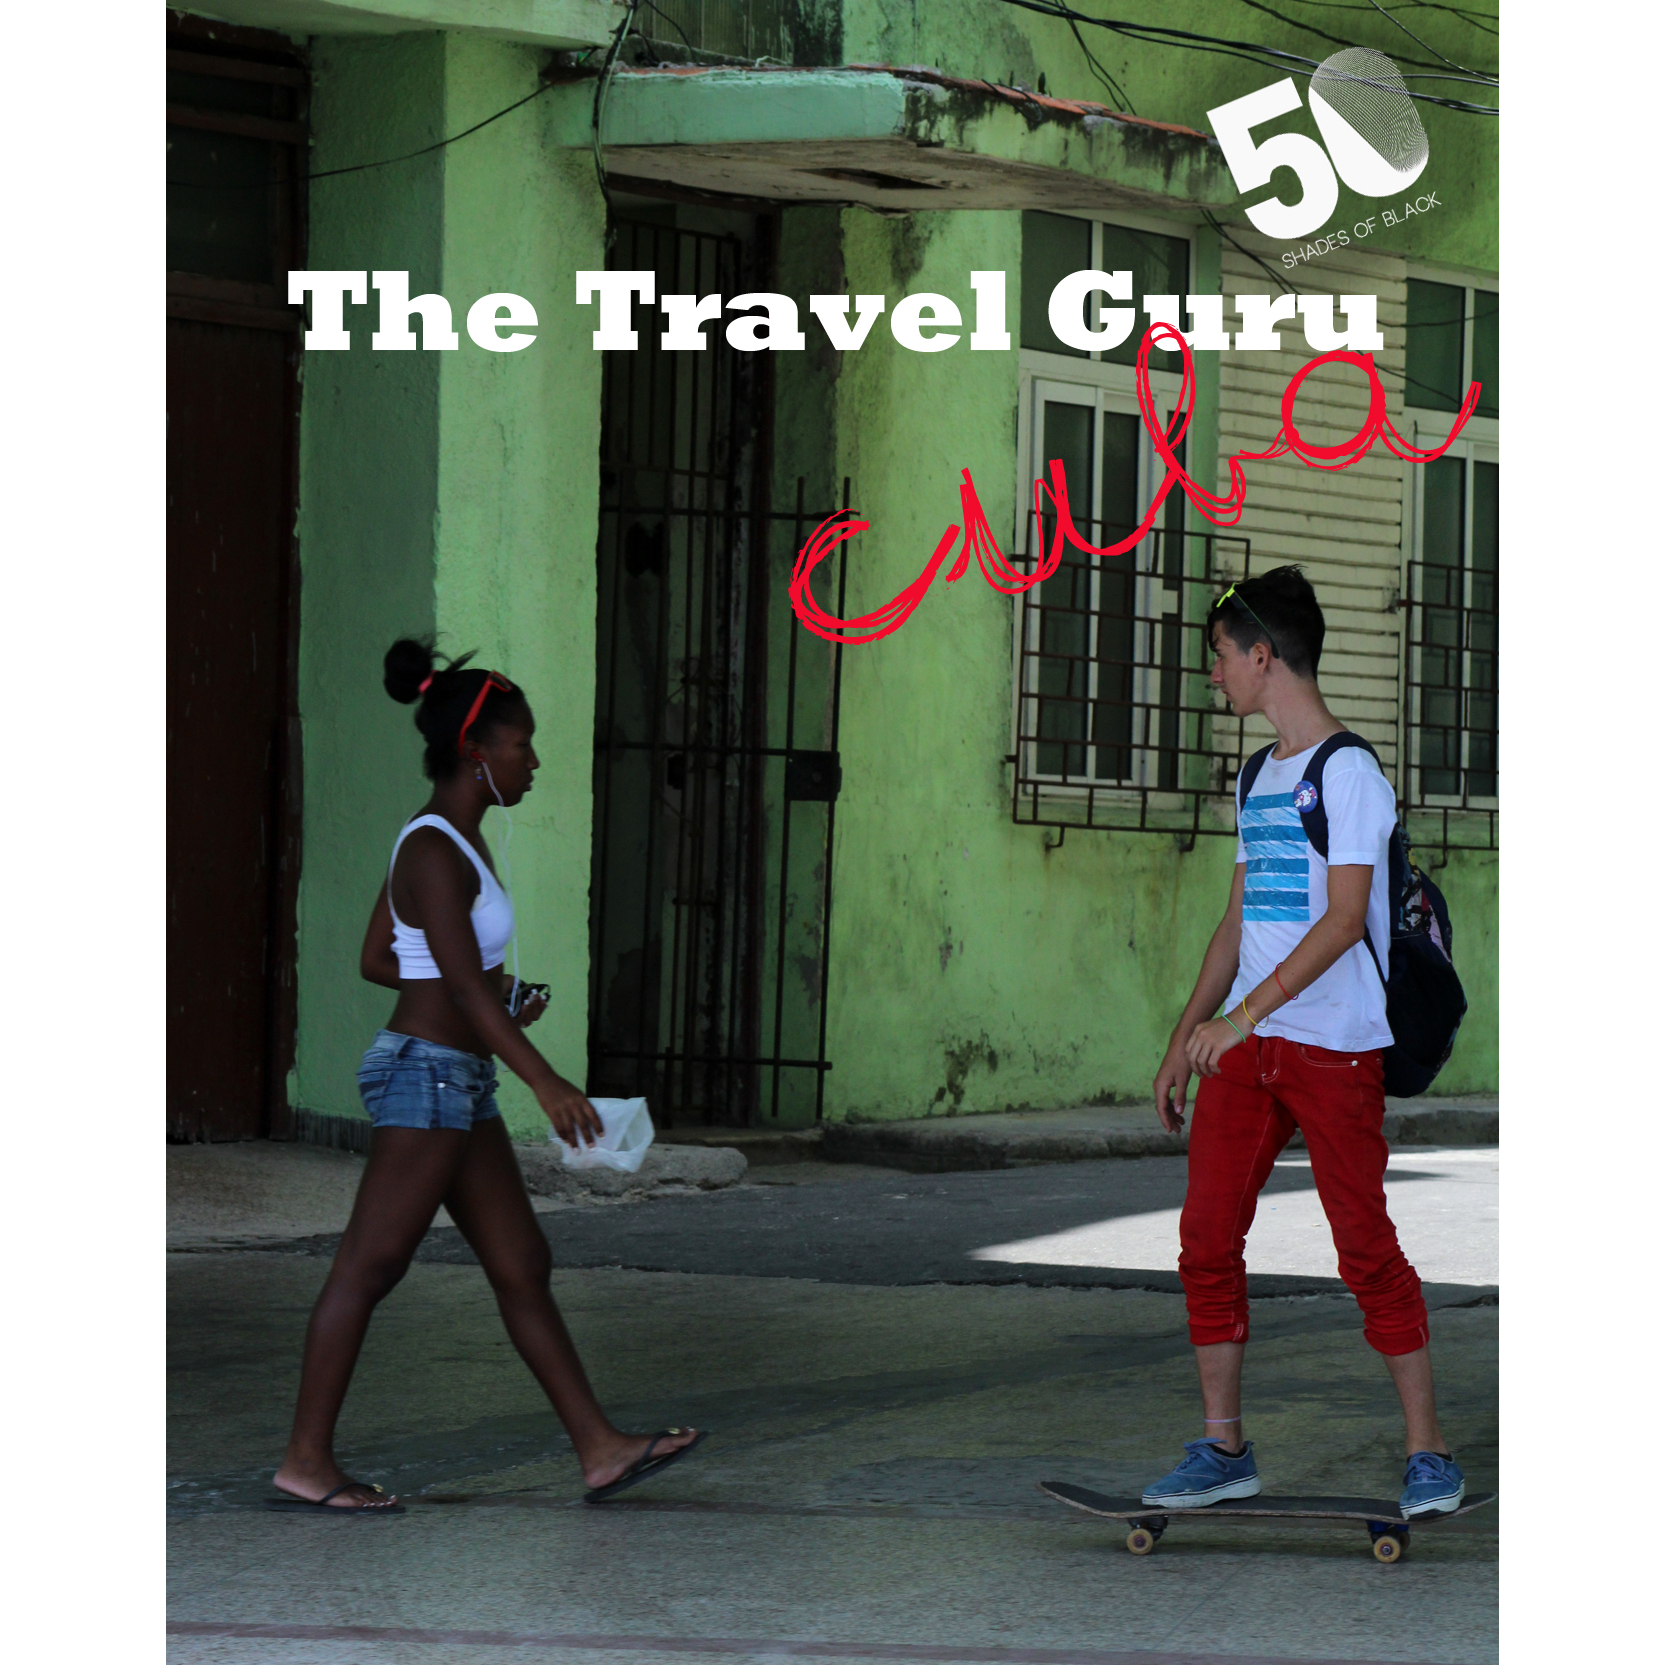 Photos and Text by The Travel Guru